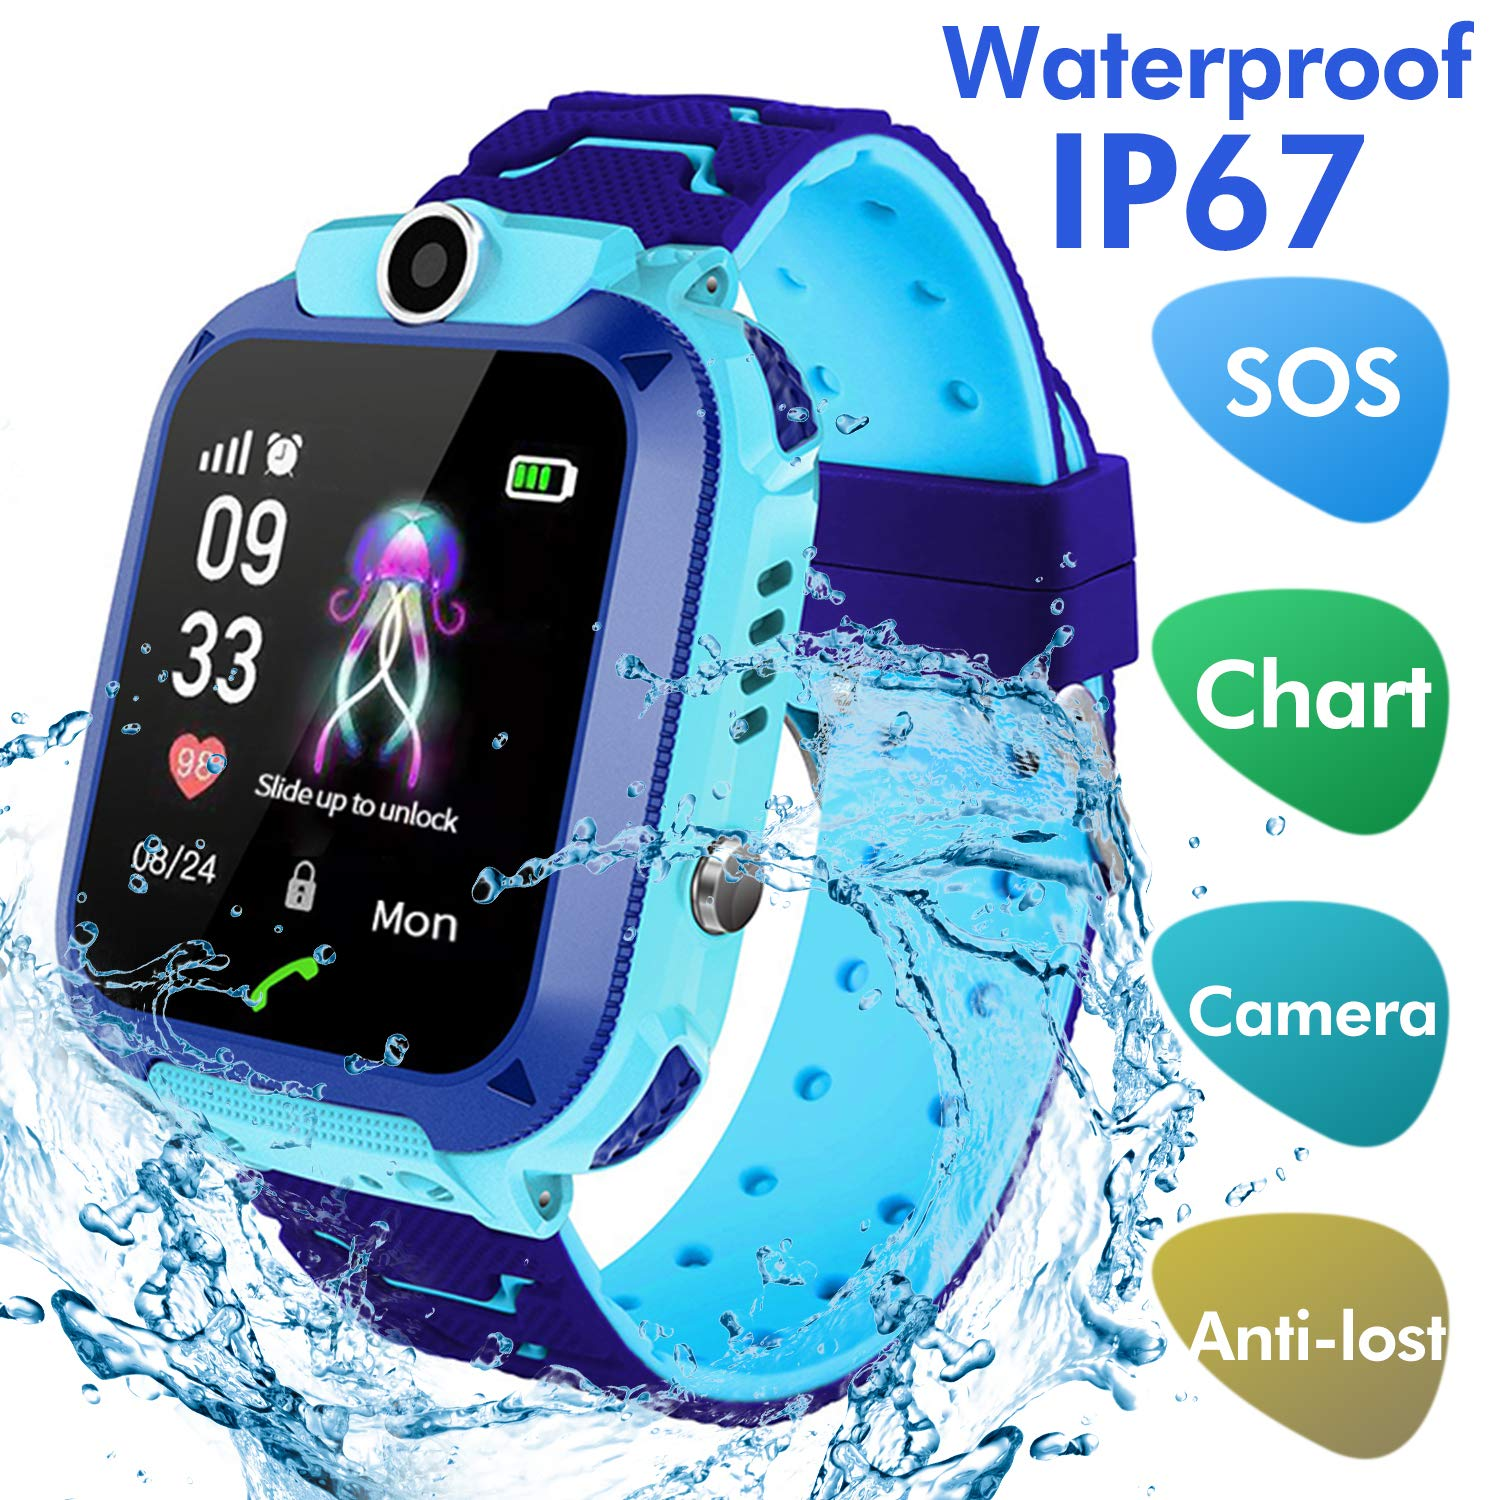 Jaybest Kids SmartWatch Waterproof, Touch Screen Mobile Smart Watches Phone for 3-13 Year Old Girls Boys, SOS Call Anti-Lost Sim Card Smartwatch with Camera, Game for Children Gift(blue)